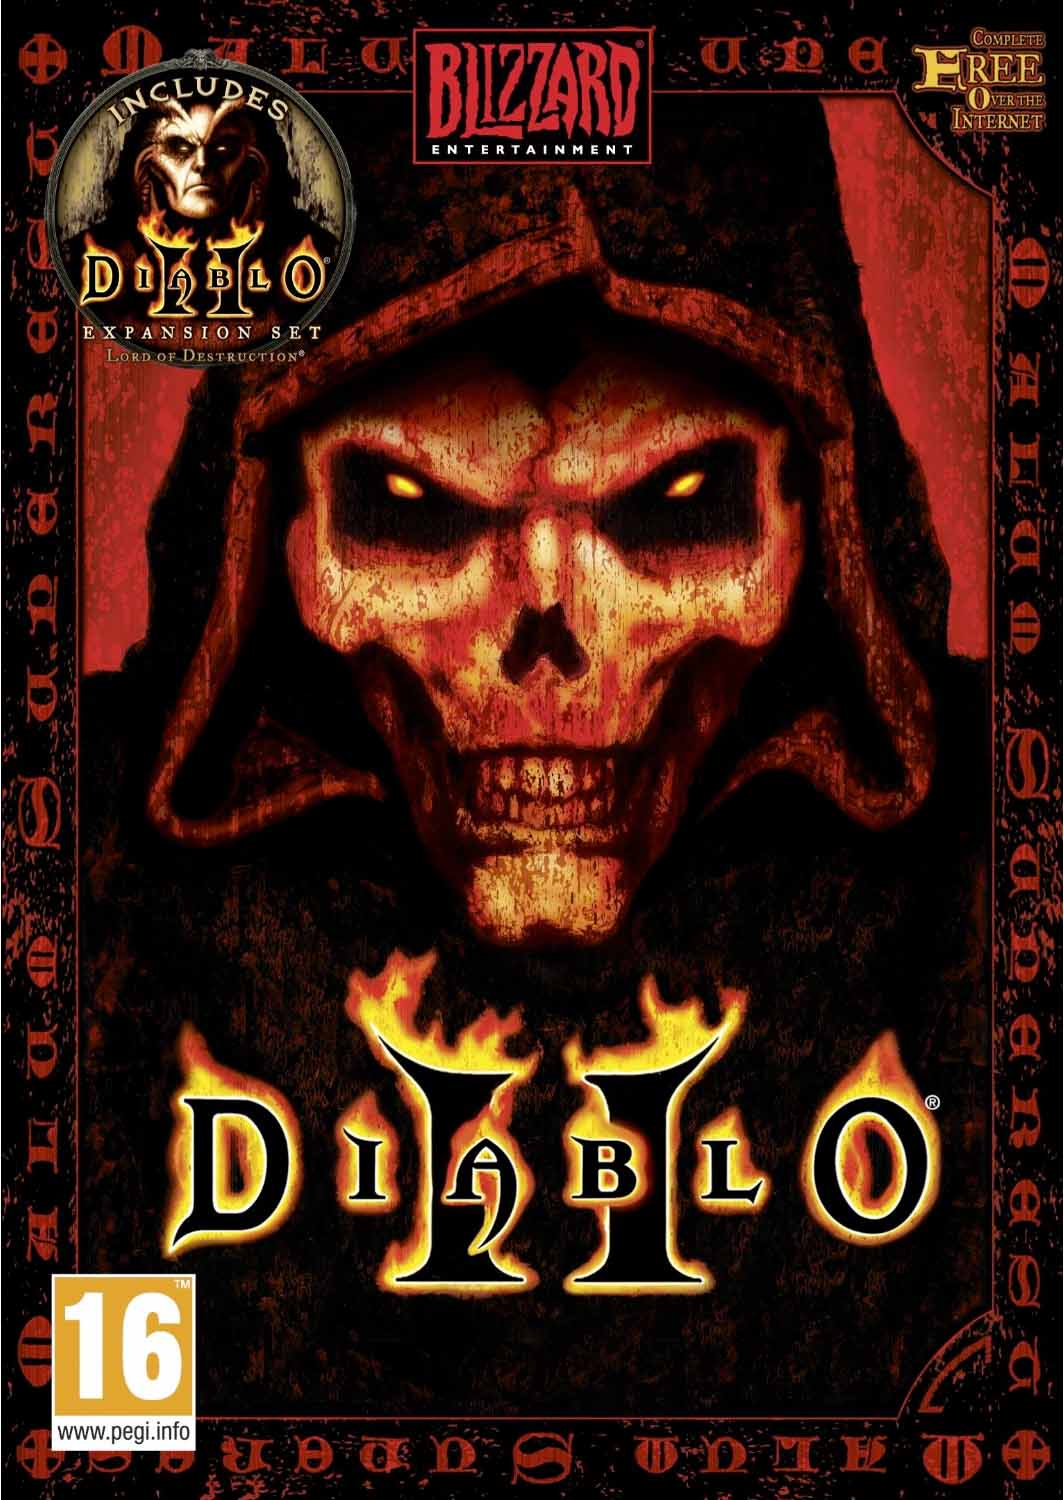 Diablo 2 Gold (Photo CDKey) RegFree/Worldwide